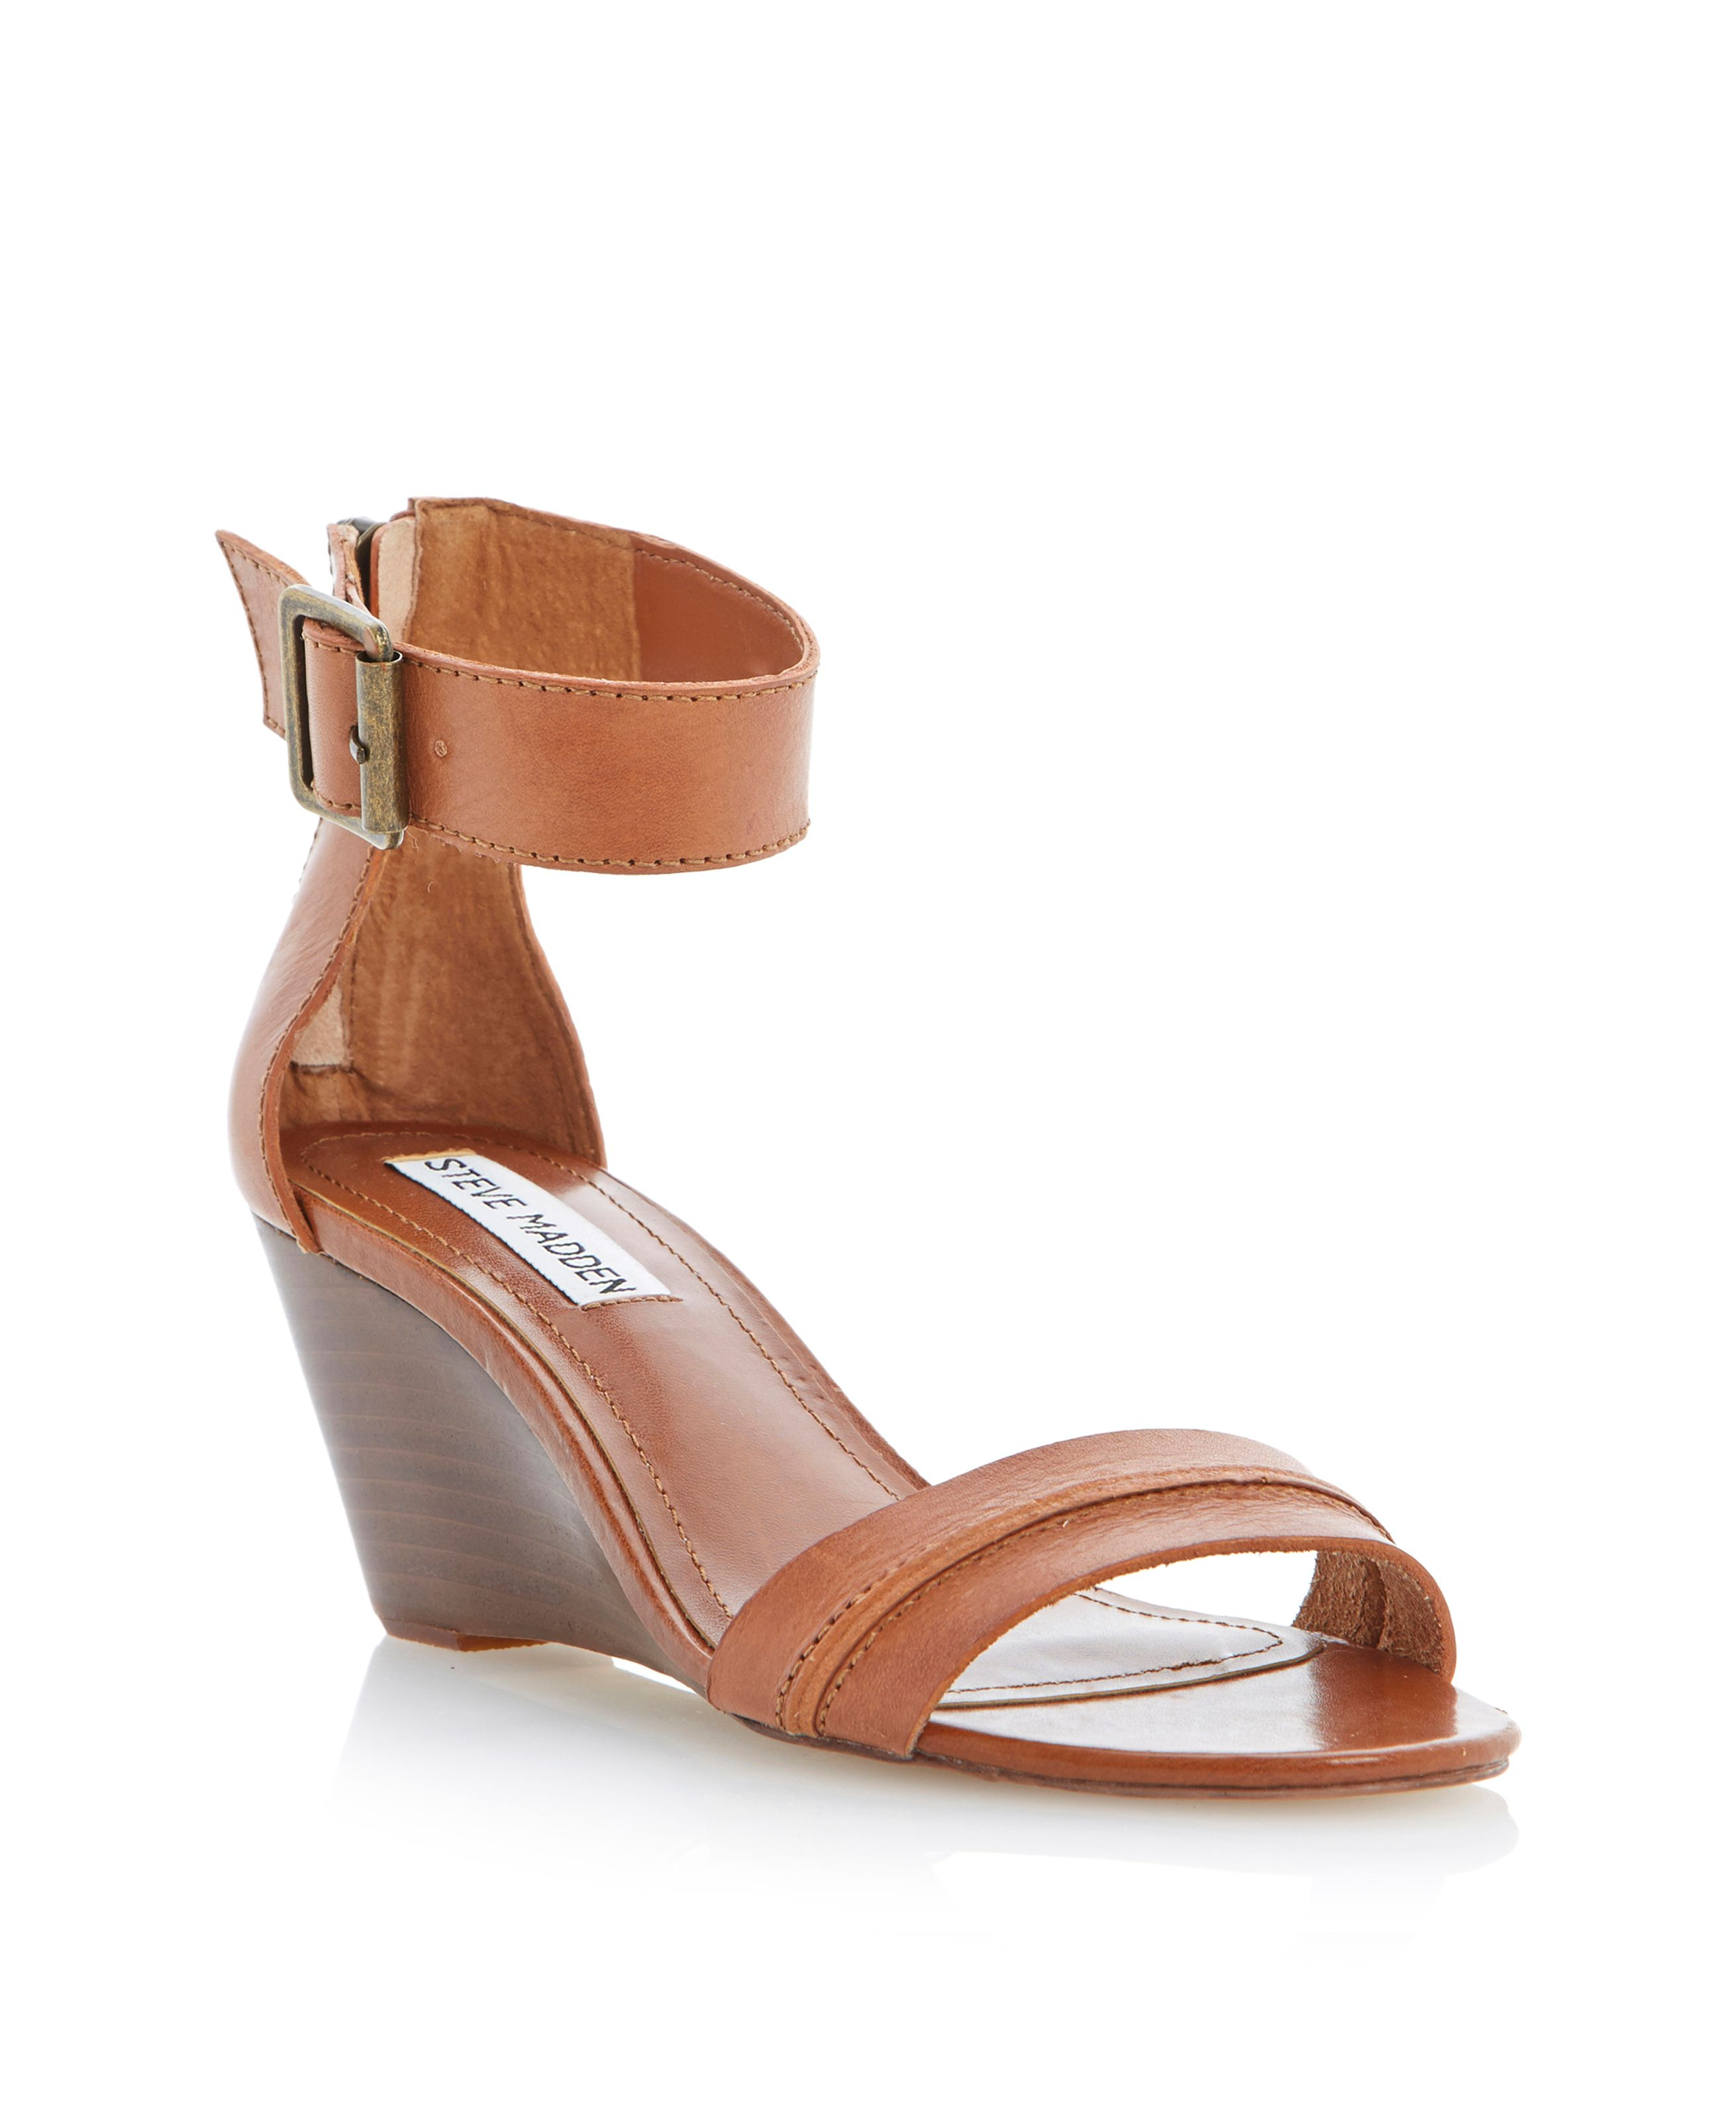 Steve Madden Neliee Buckle Ankle Strap Wedge Sandals in ...